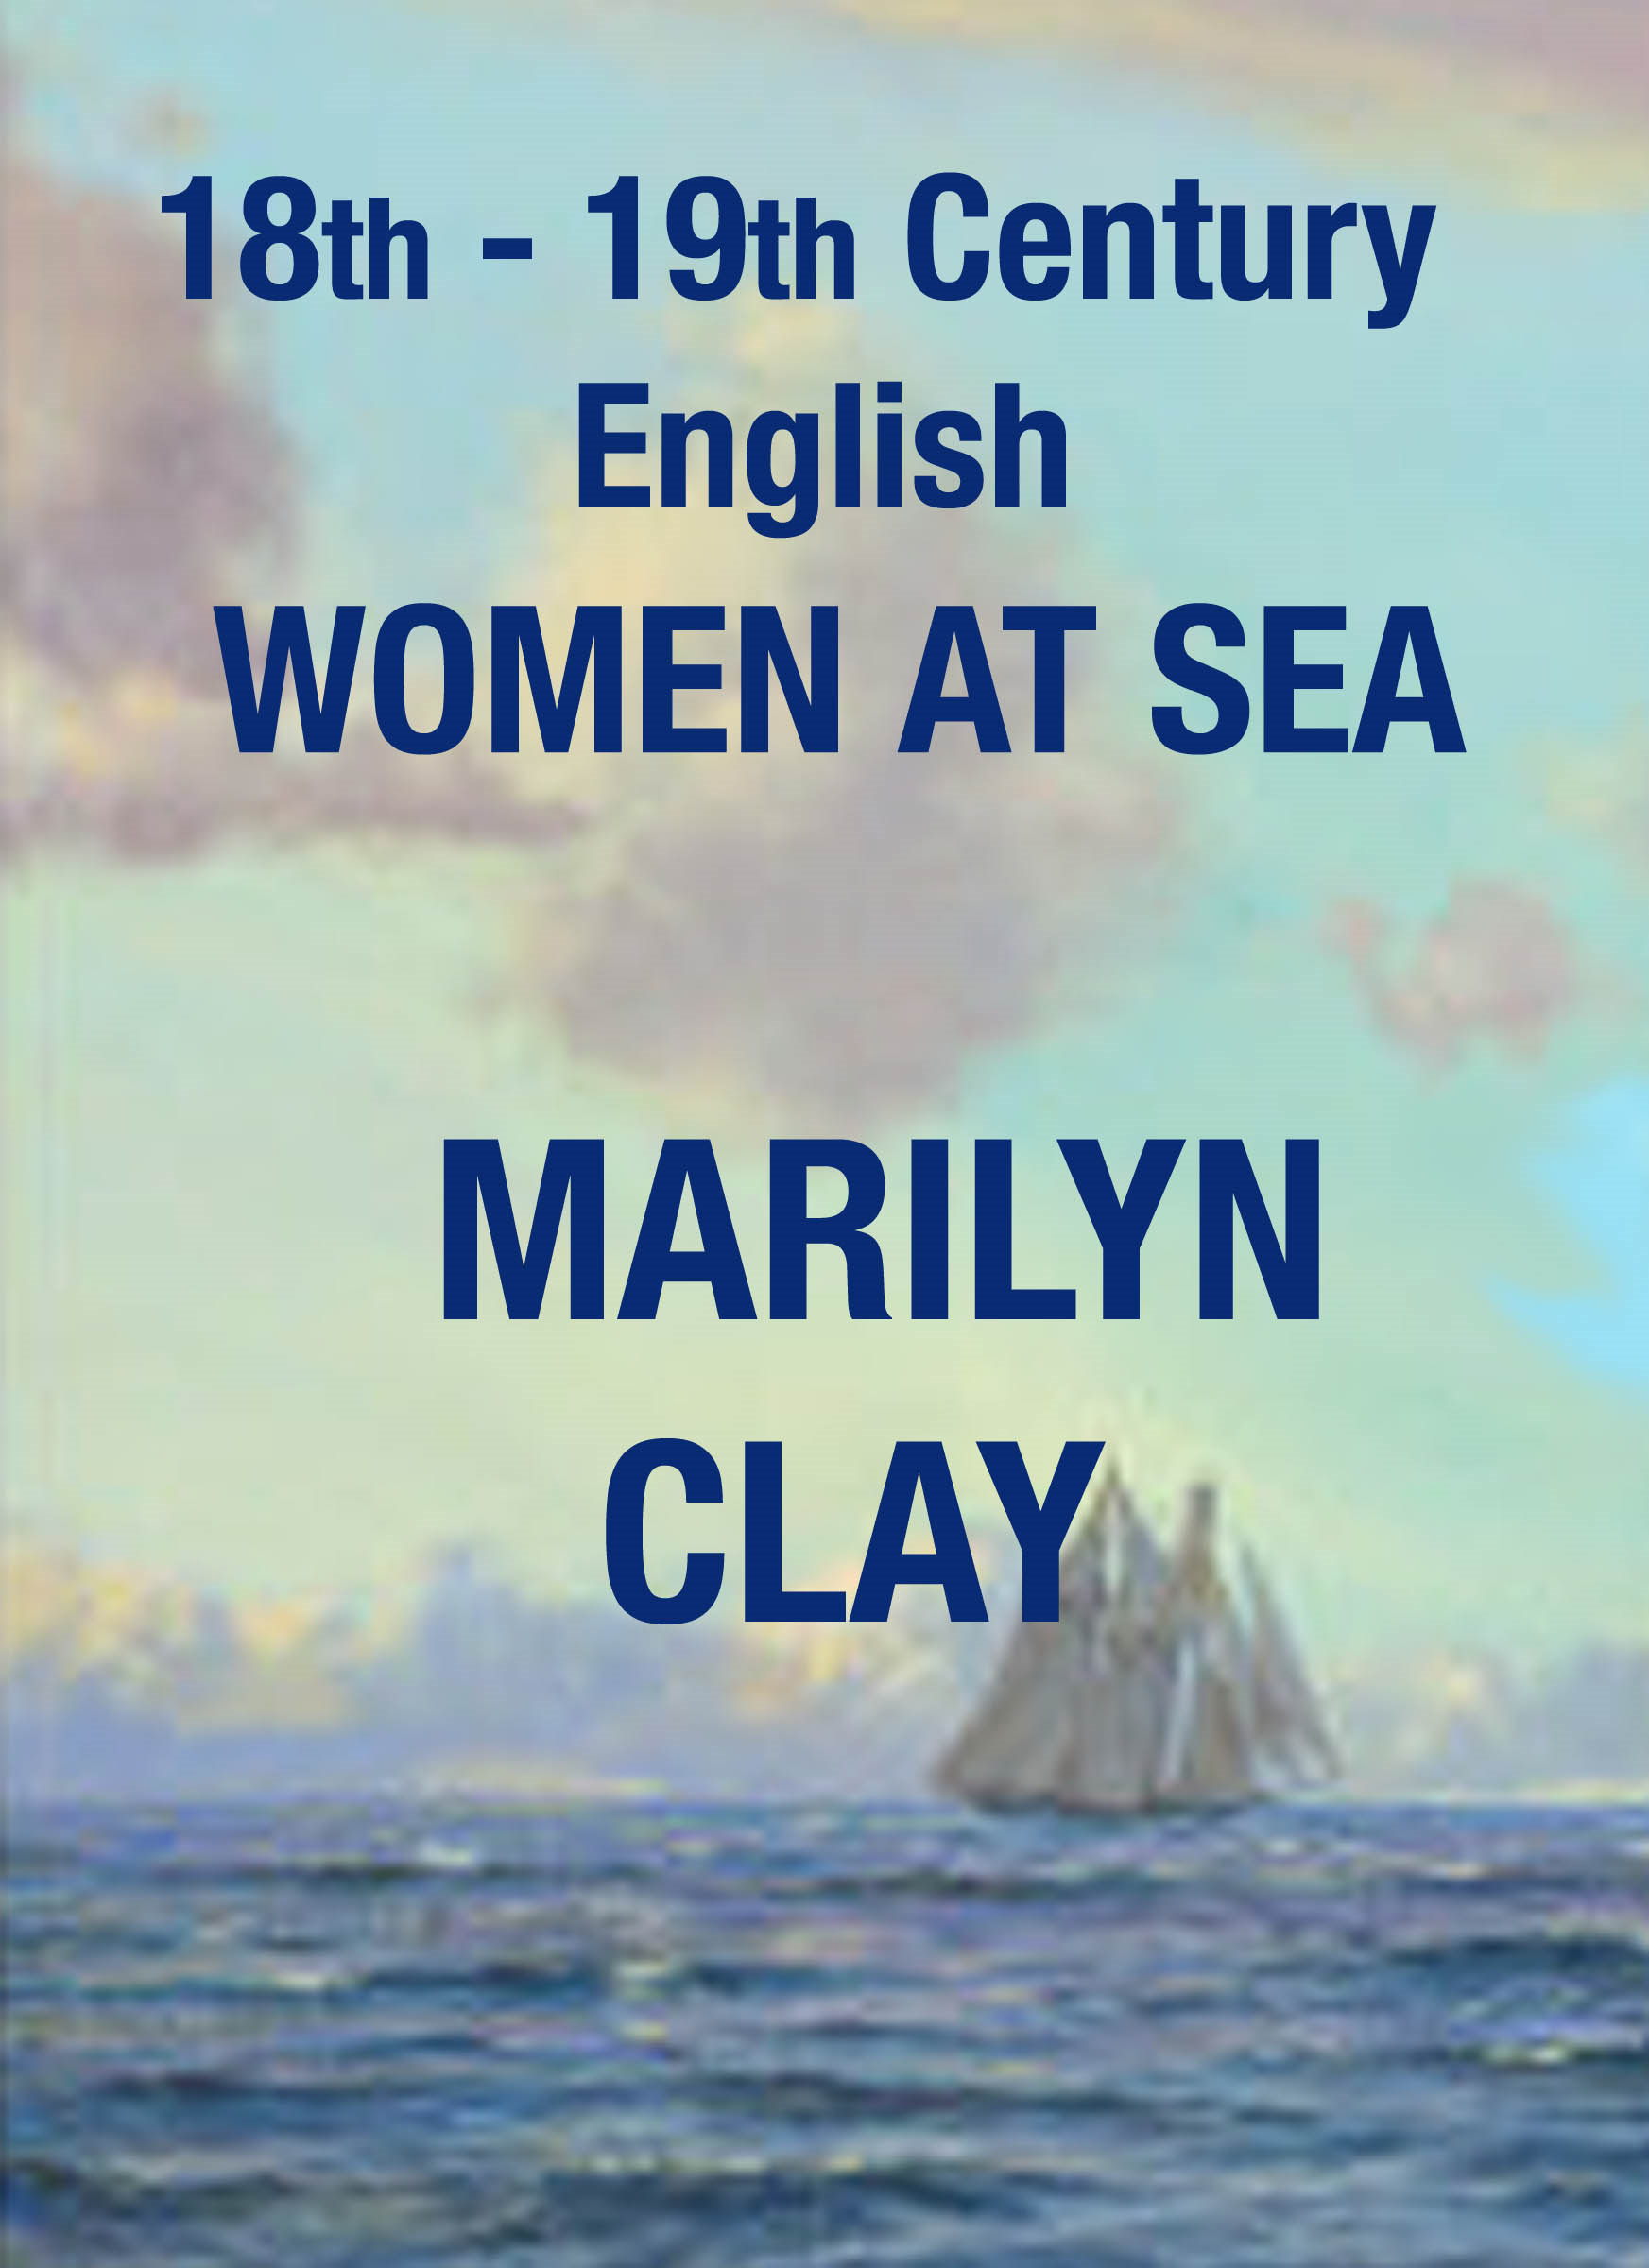 18th & 19th Century English Women At Sea By: Marilyn Clay